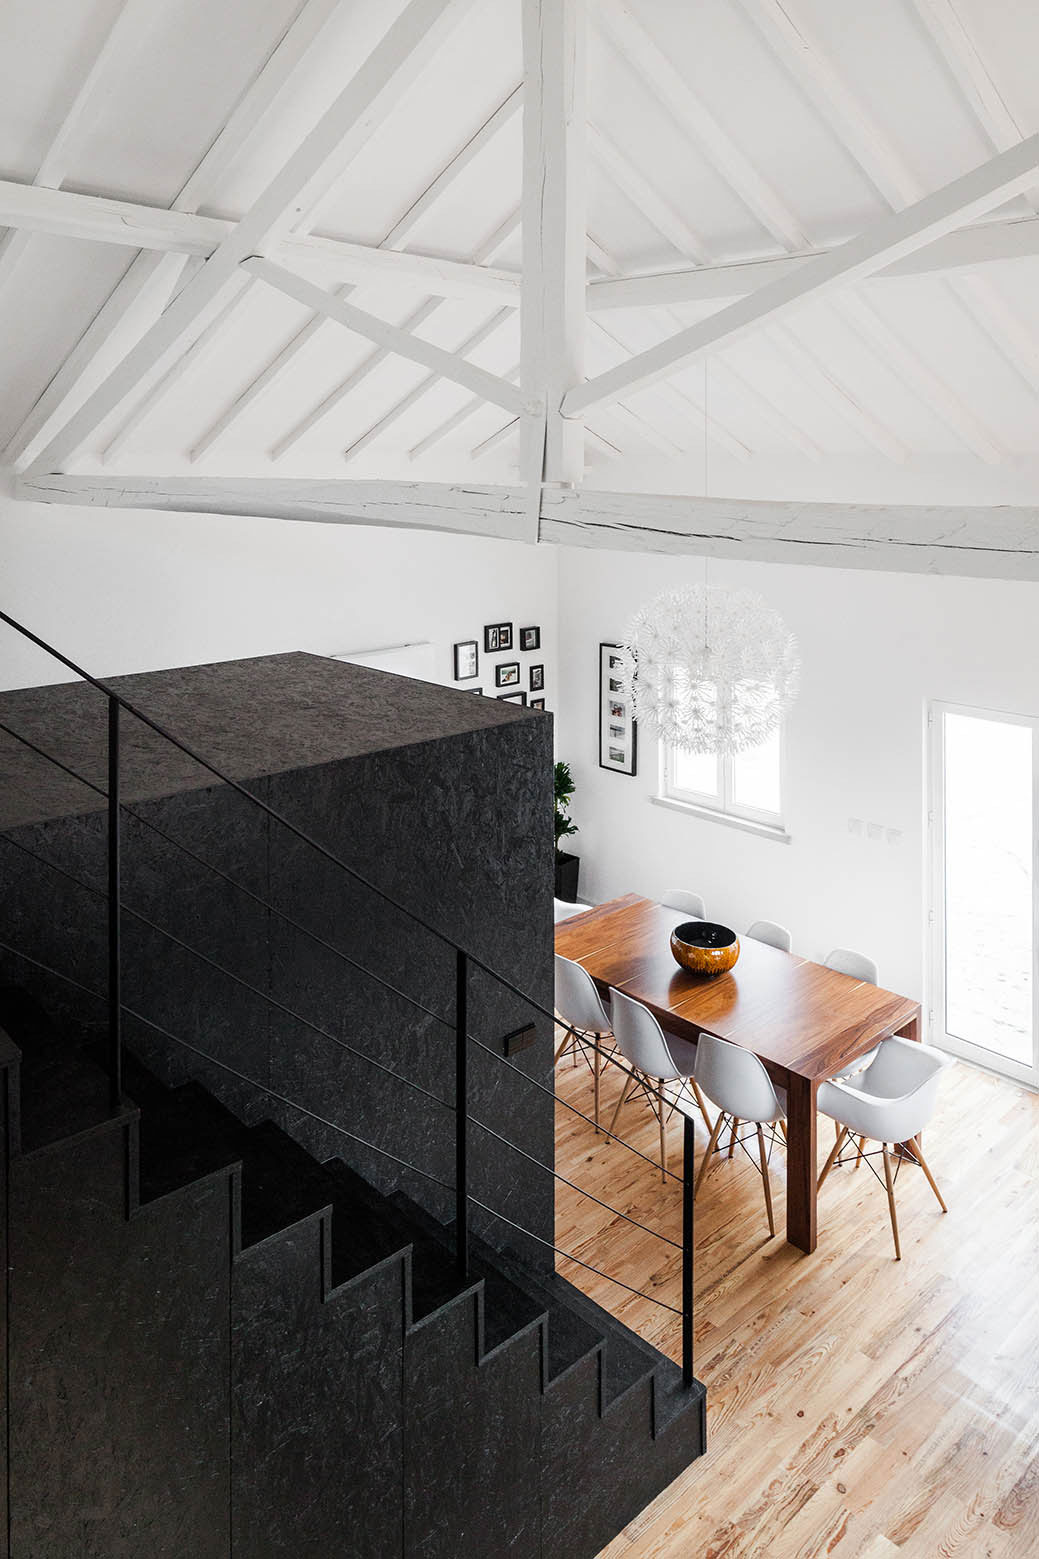 Barn House in Portugal by Ines Brandao Arquitectura | Yellowtrace